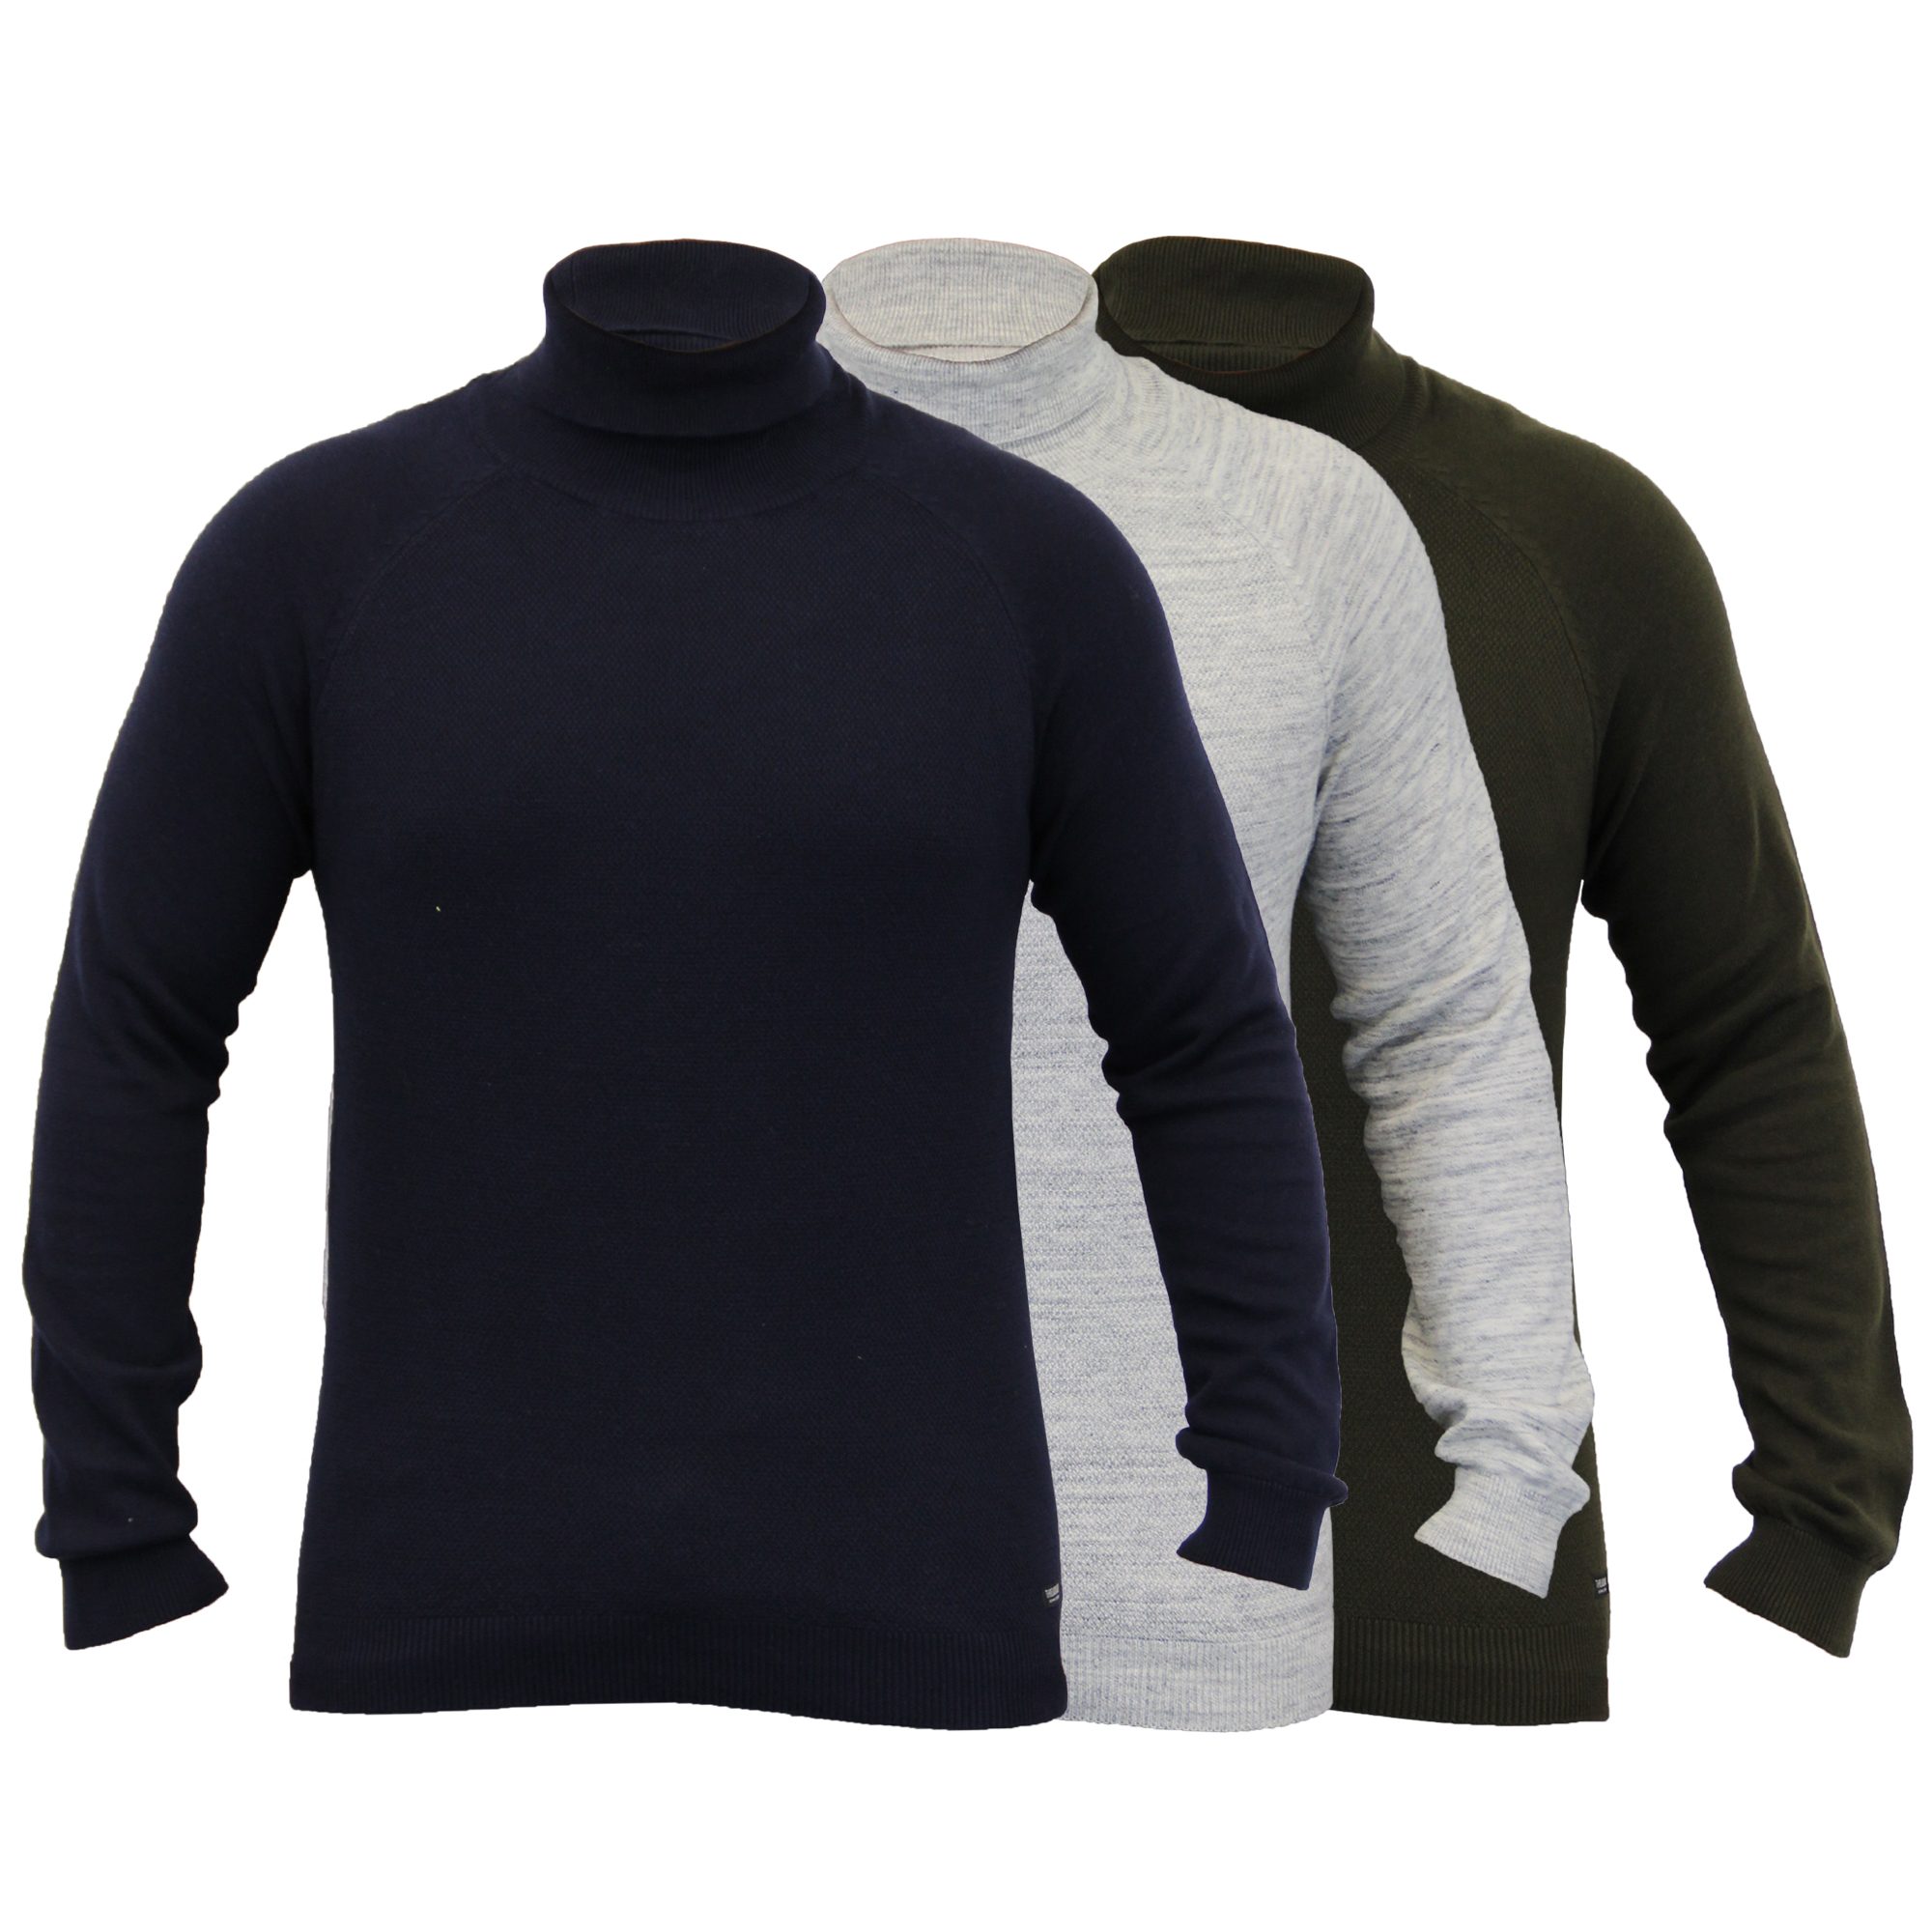 Mens-Jumper-Threadbare-Knitted-Sweater-Turtle-Polo-Neck-Pullover-Top-Winter-New thumbnail 4